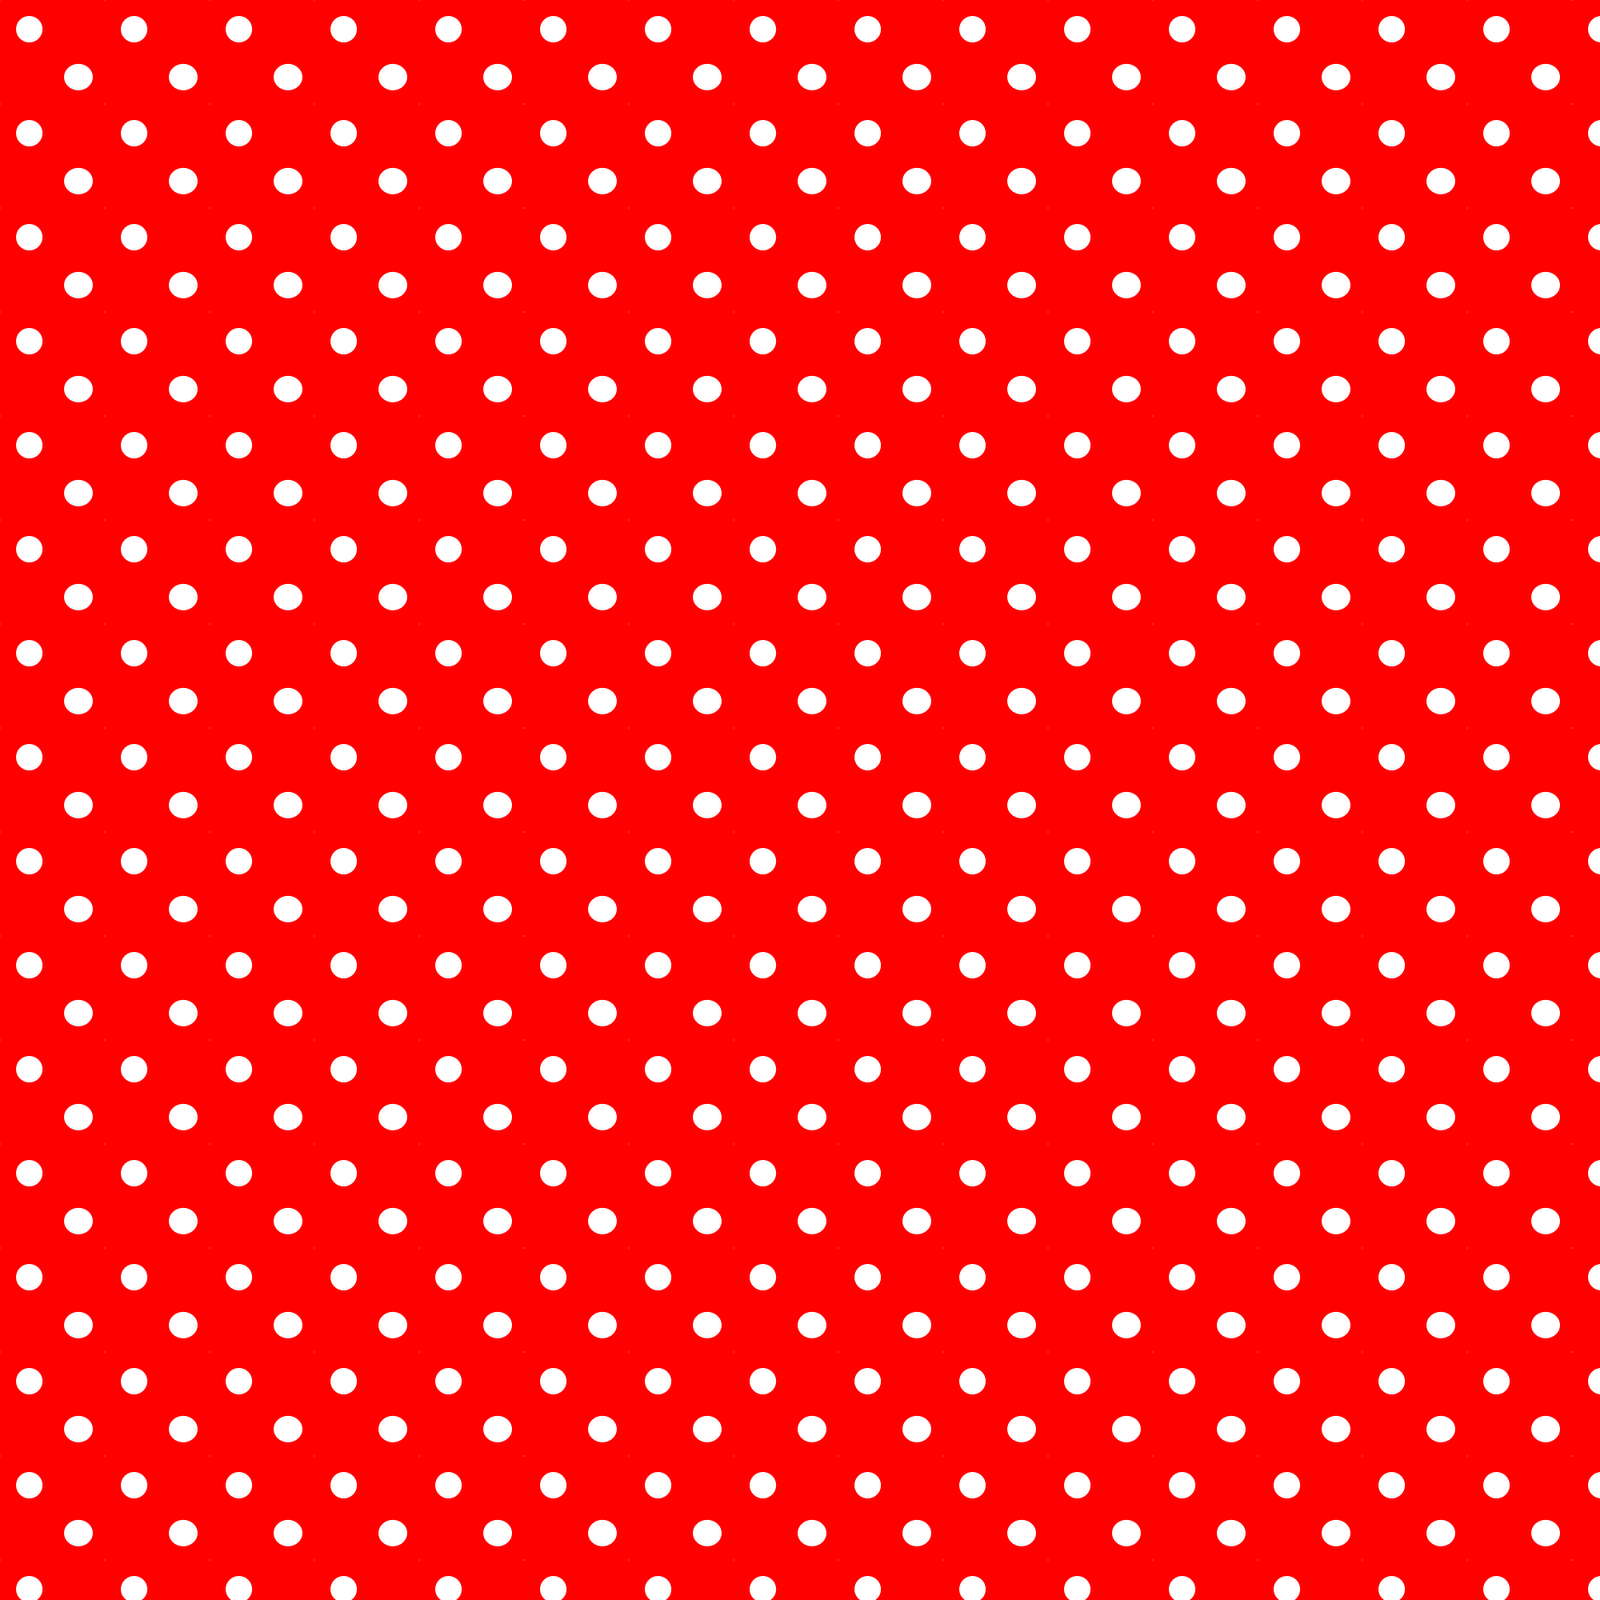 Polka Dot Background On Pinterest Digital Backgrounds